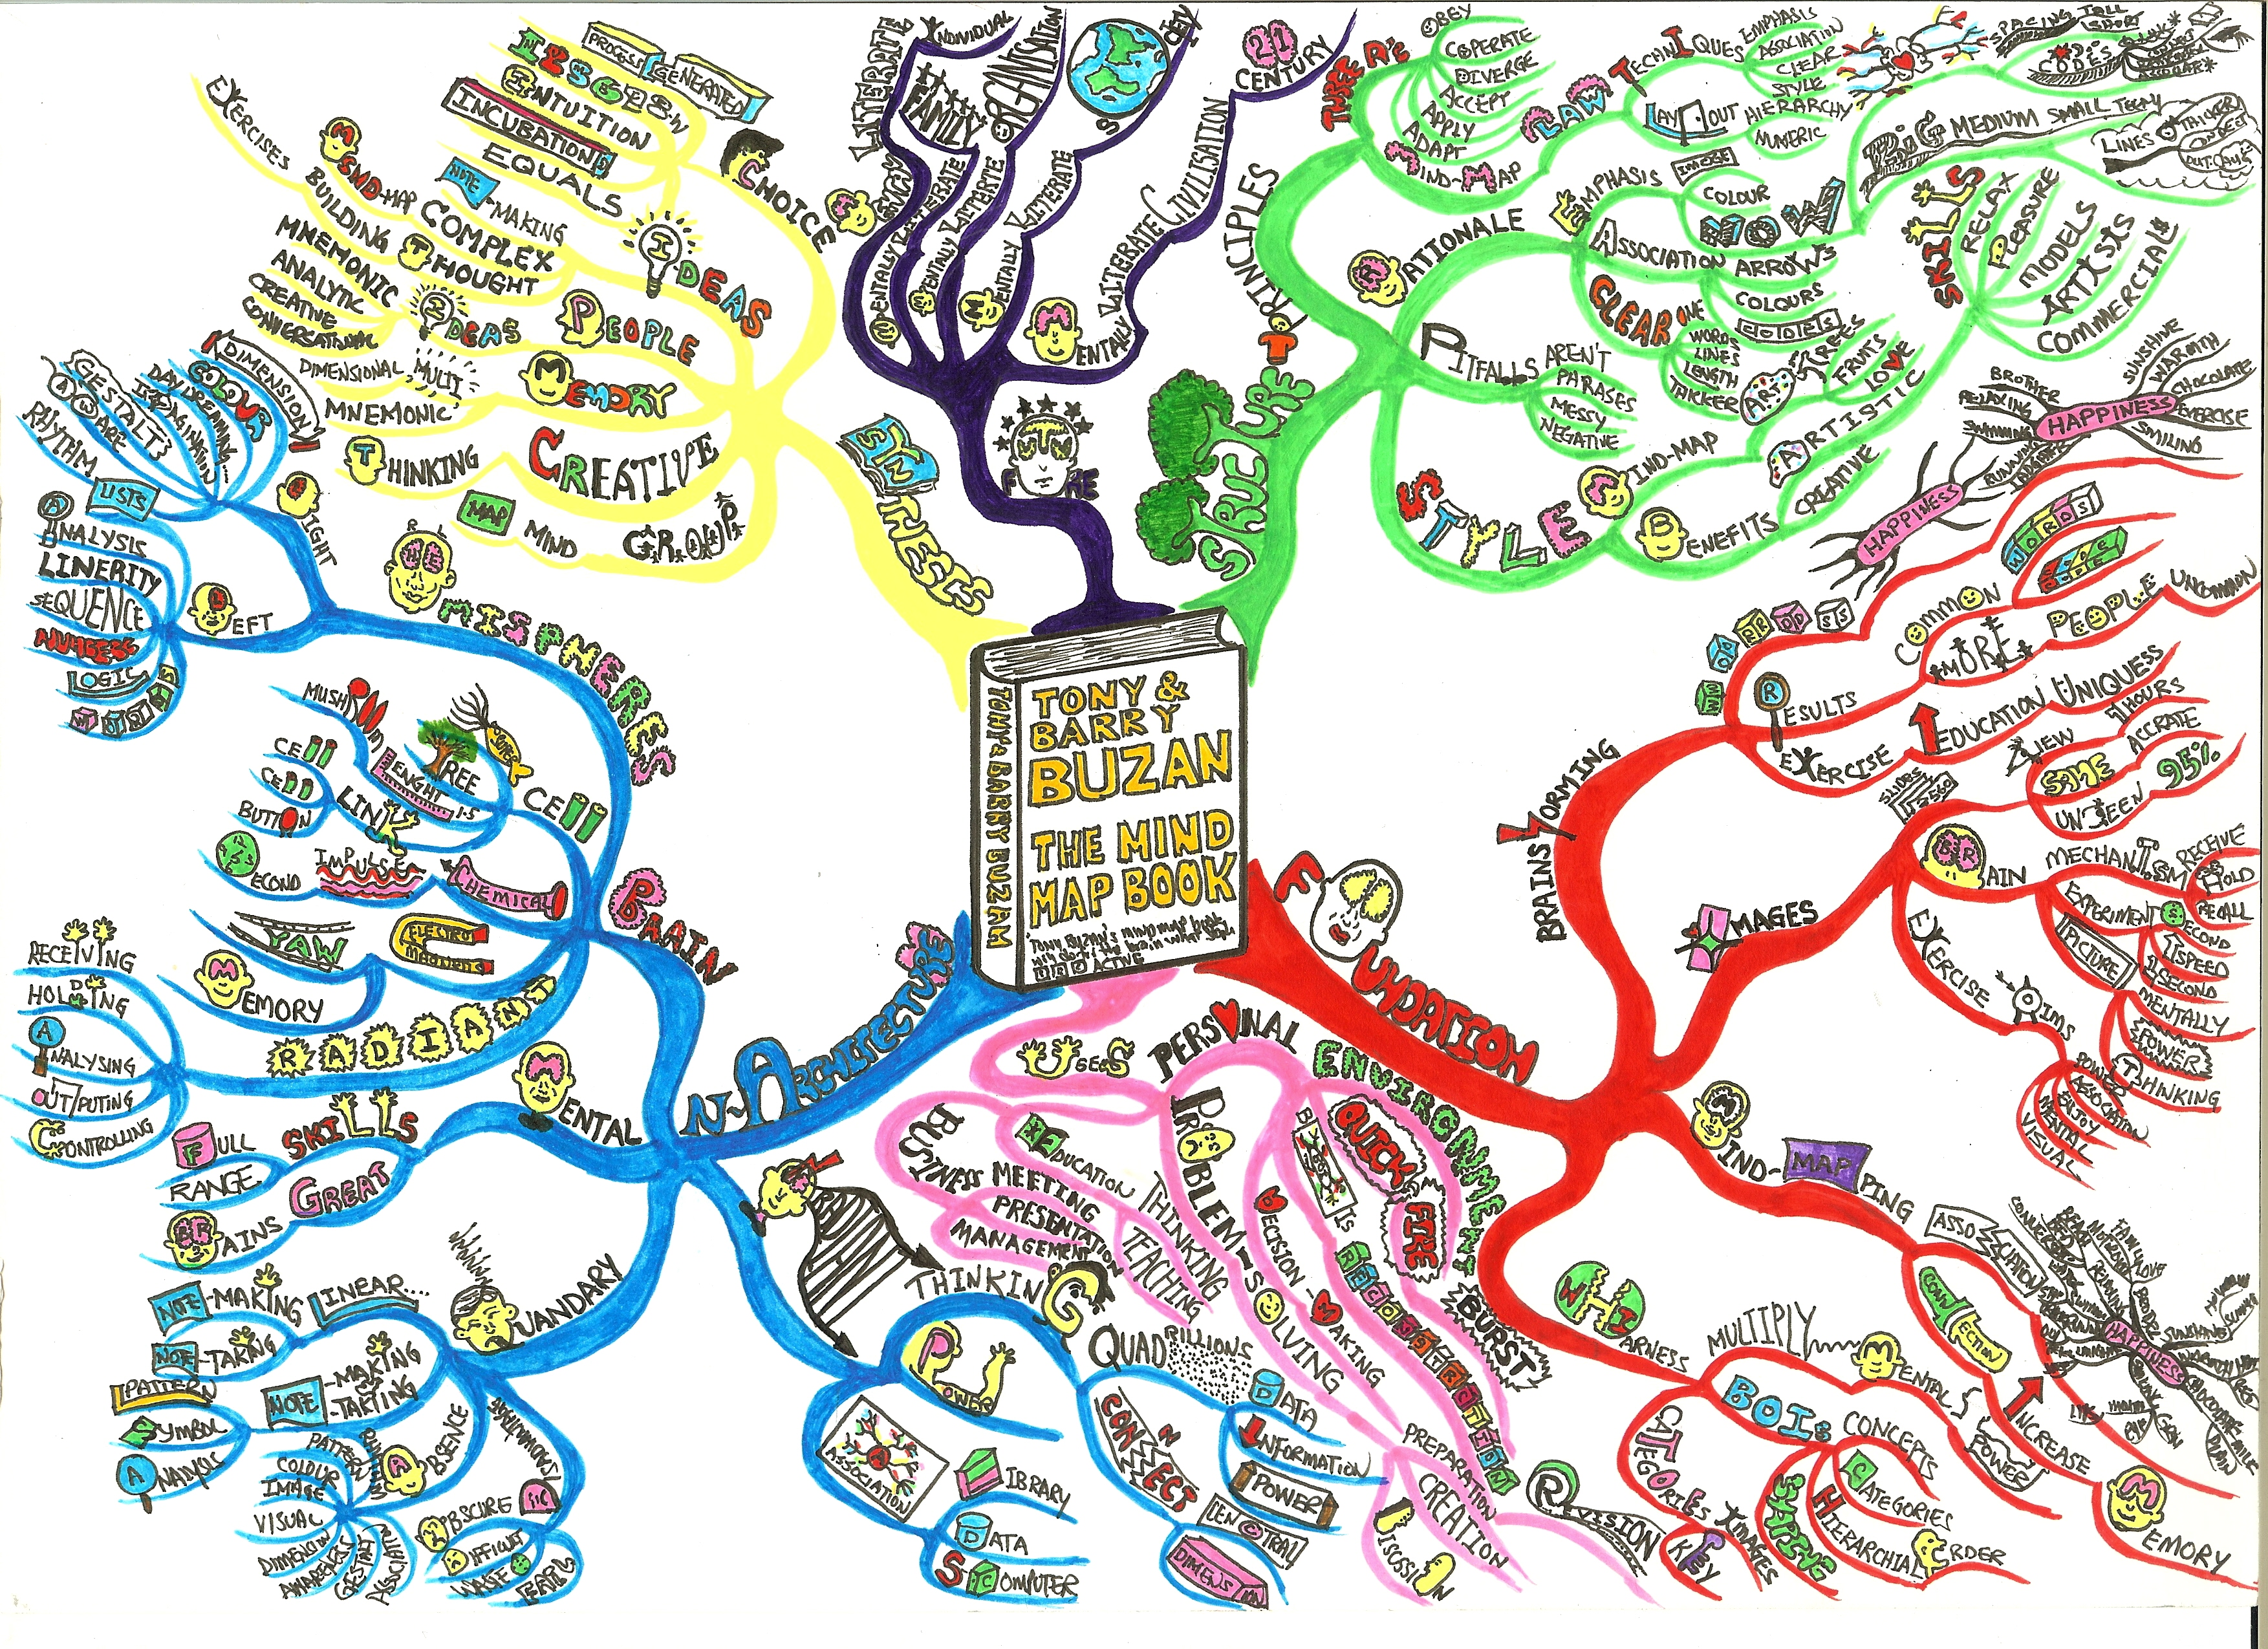 Tony buzan the mind map book